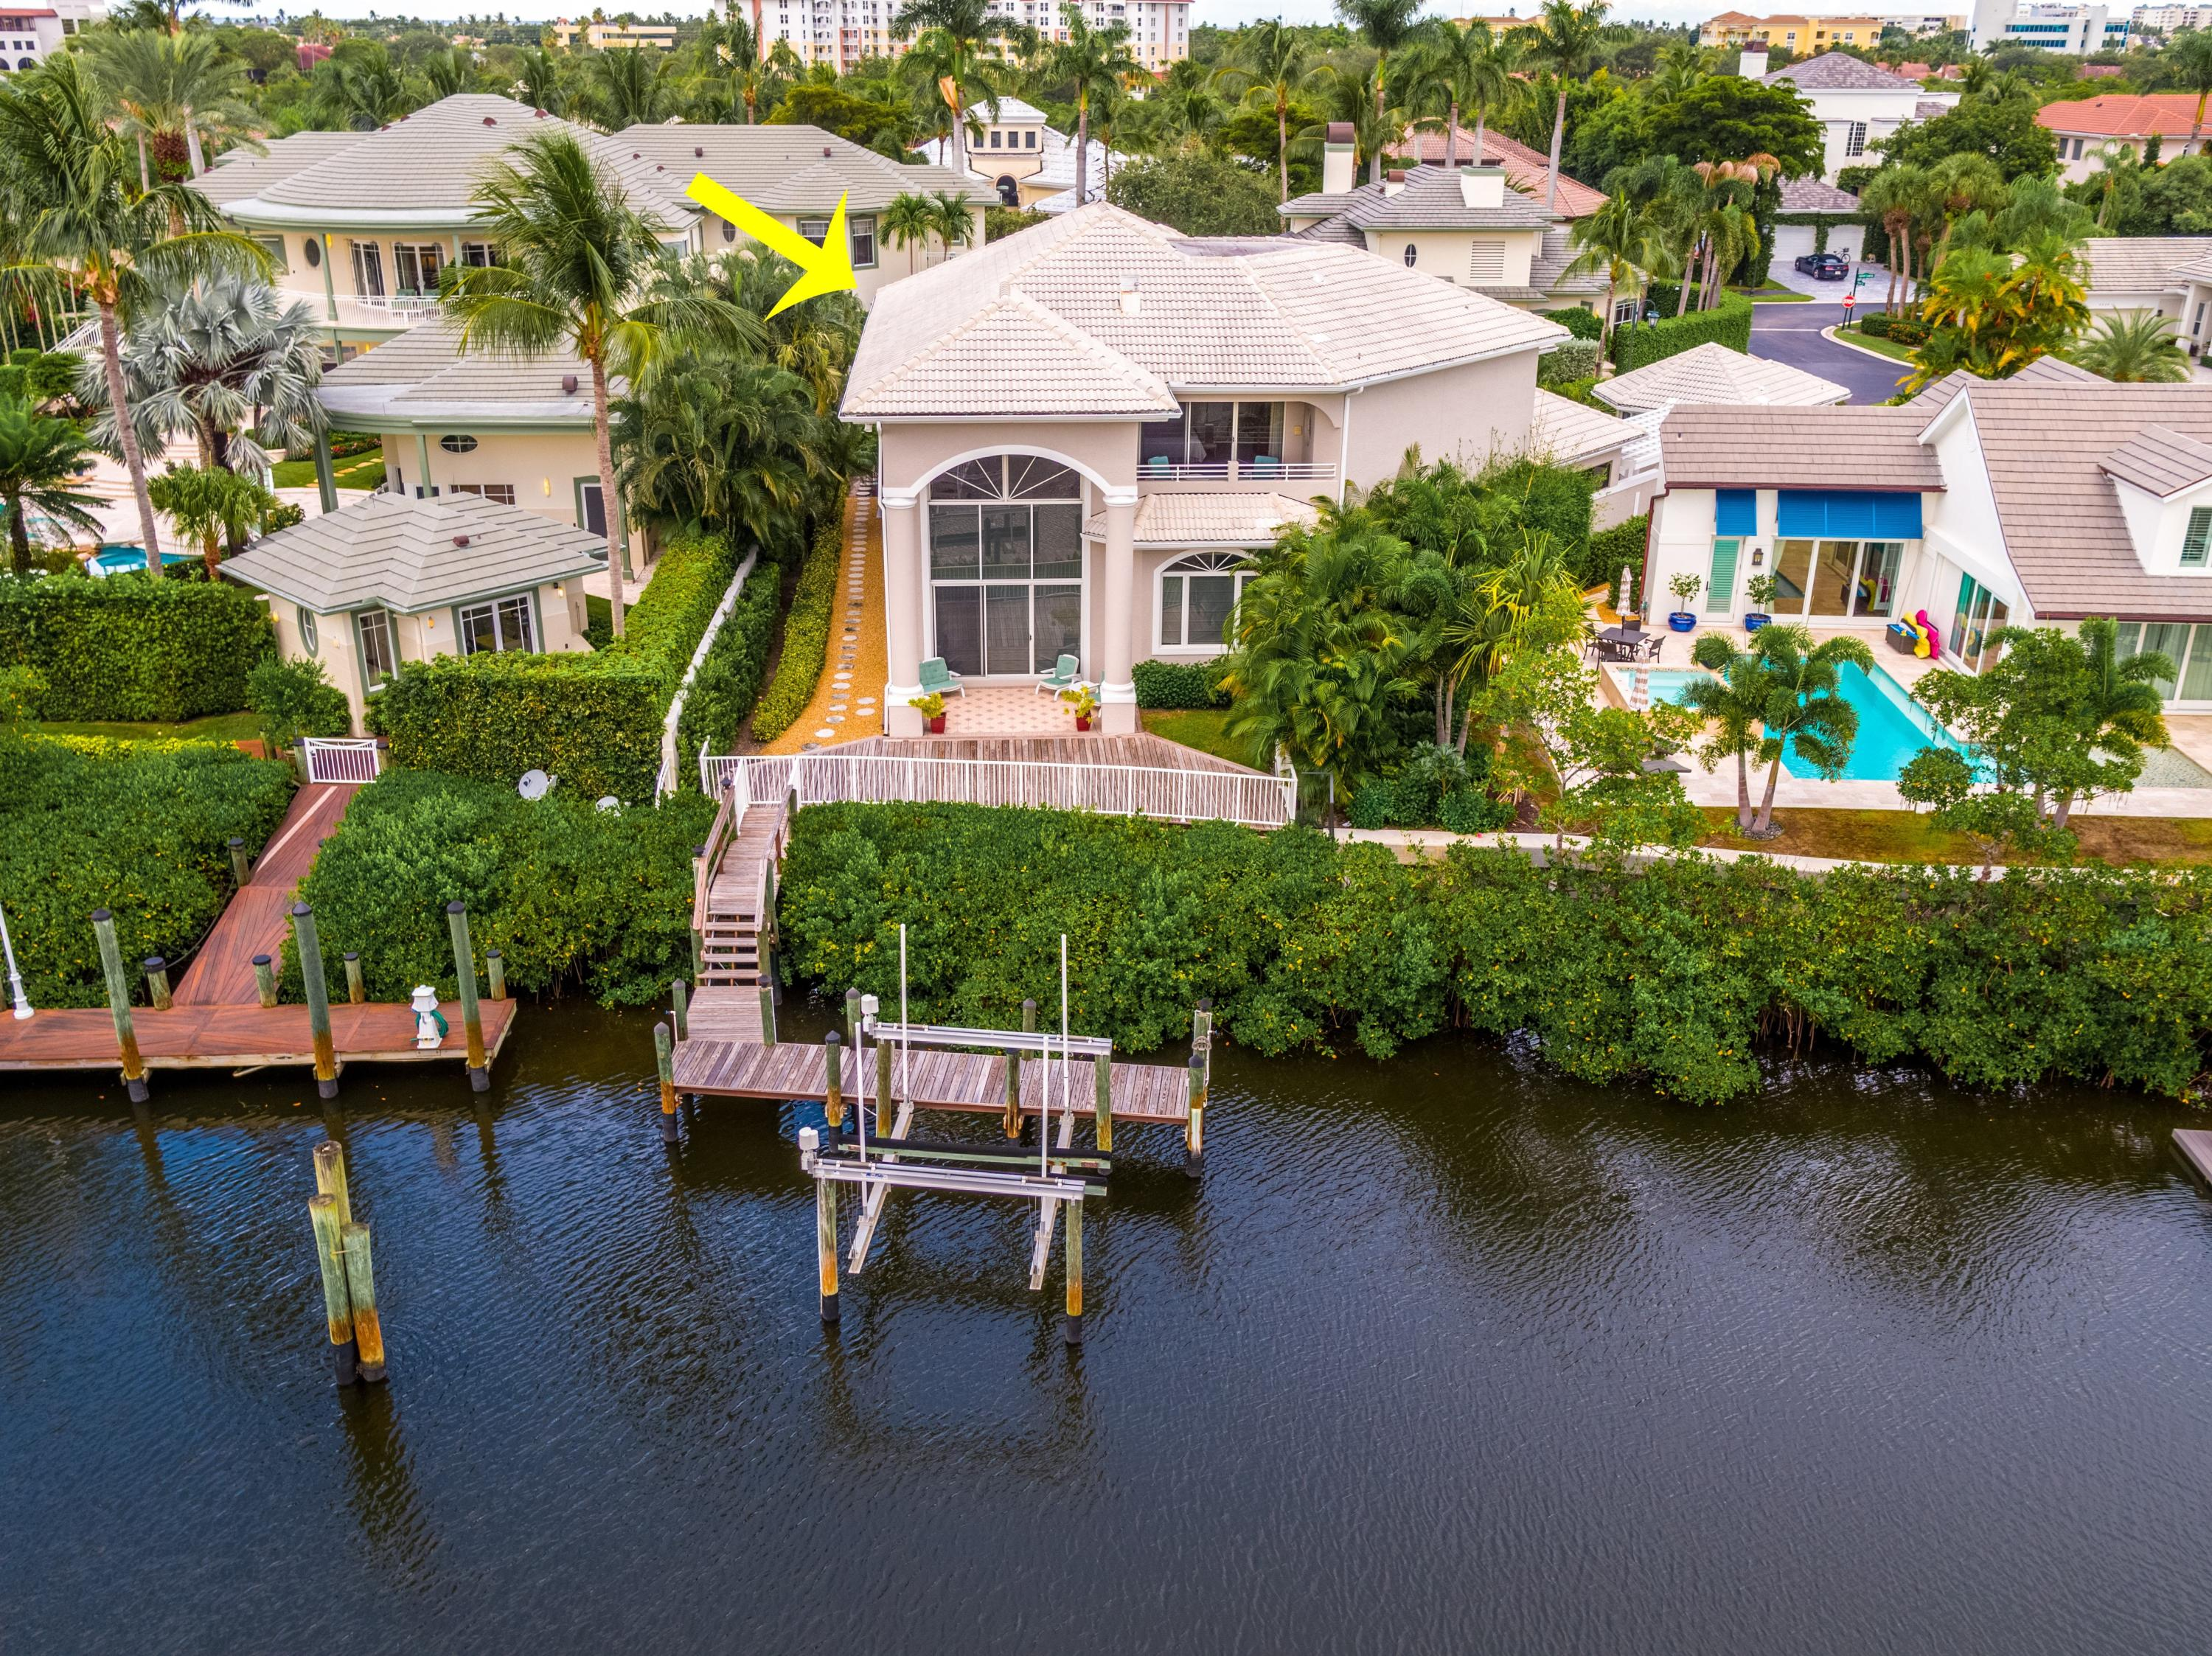 New Home for sale at 3231 Tidegate Circle in Jupiter